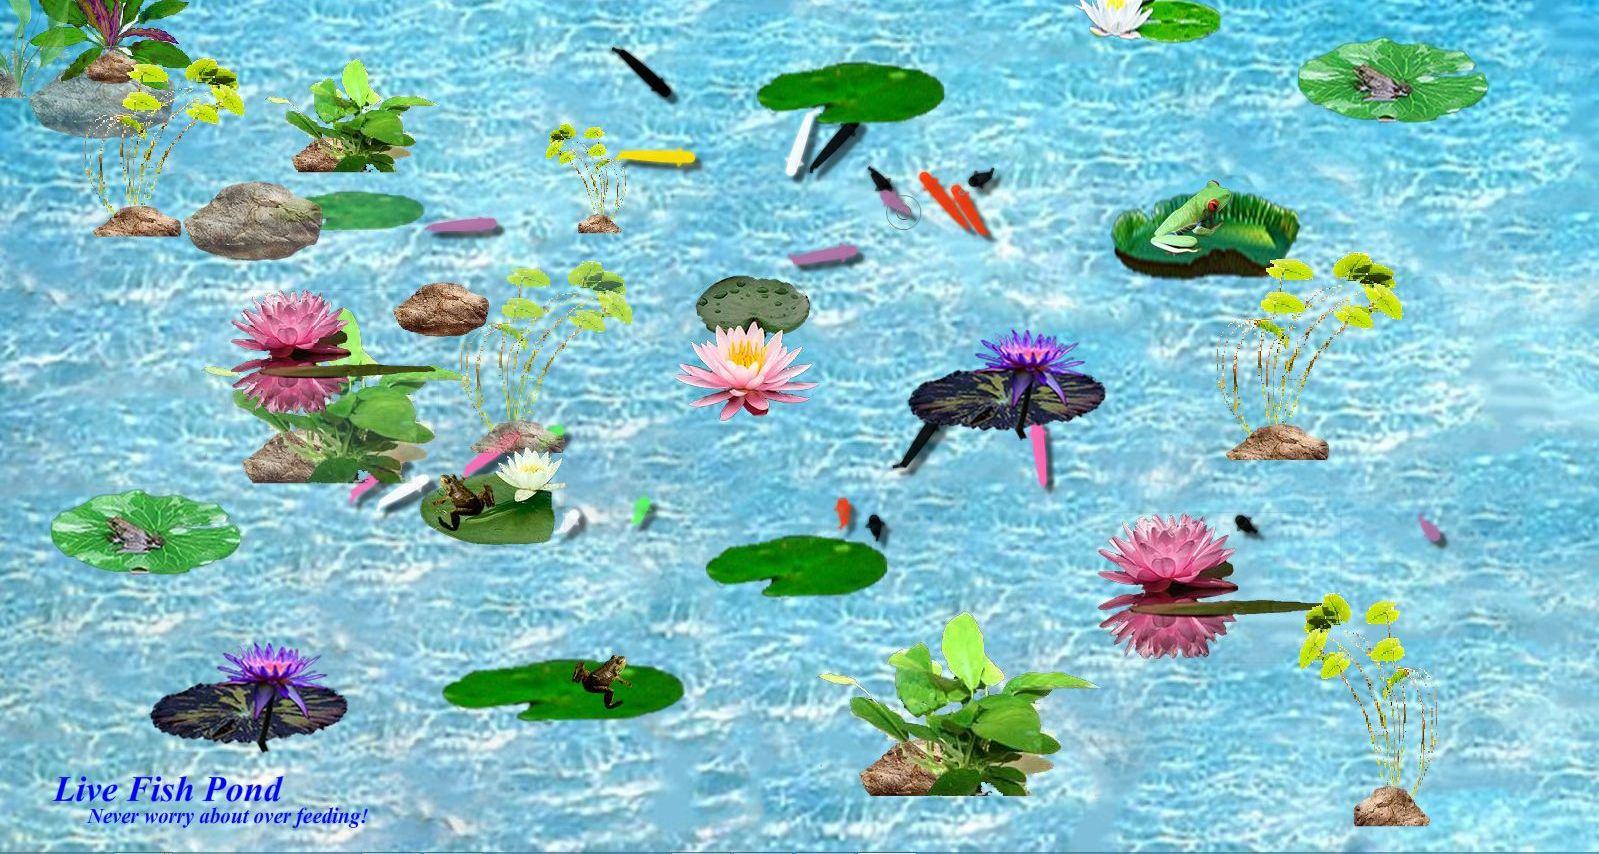 Live fish pond download 11street malaysia board games for Live fish games